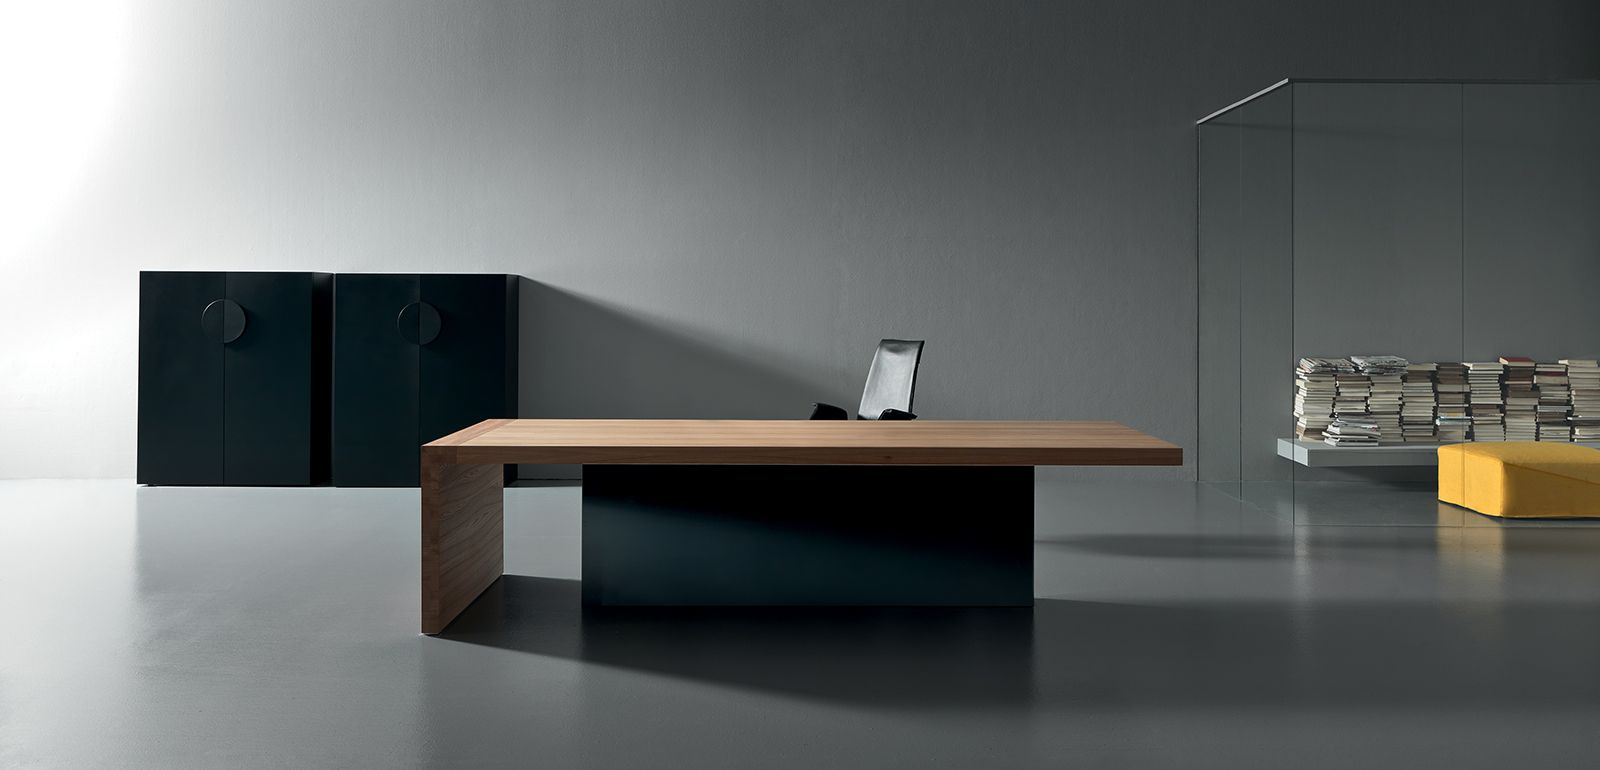 Mobilier de bureau design pour professionnel paris lyon for Mobilier salon professionnel